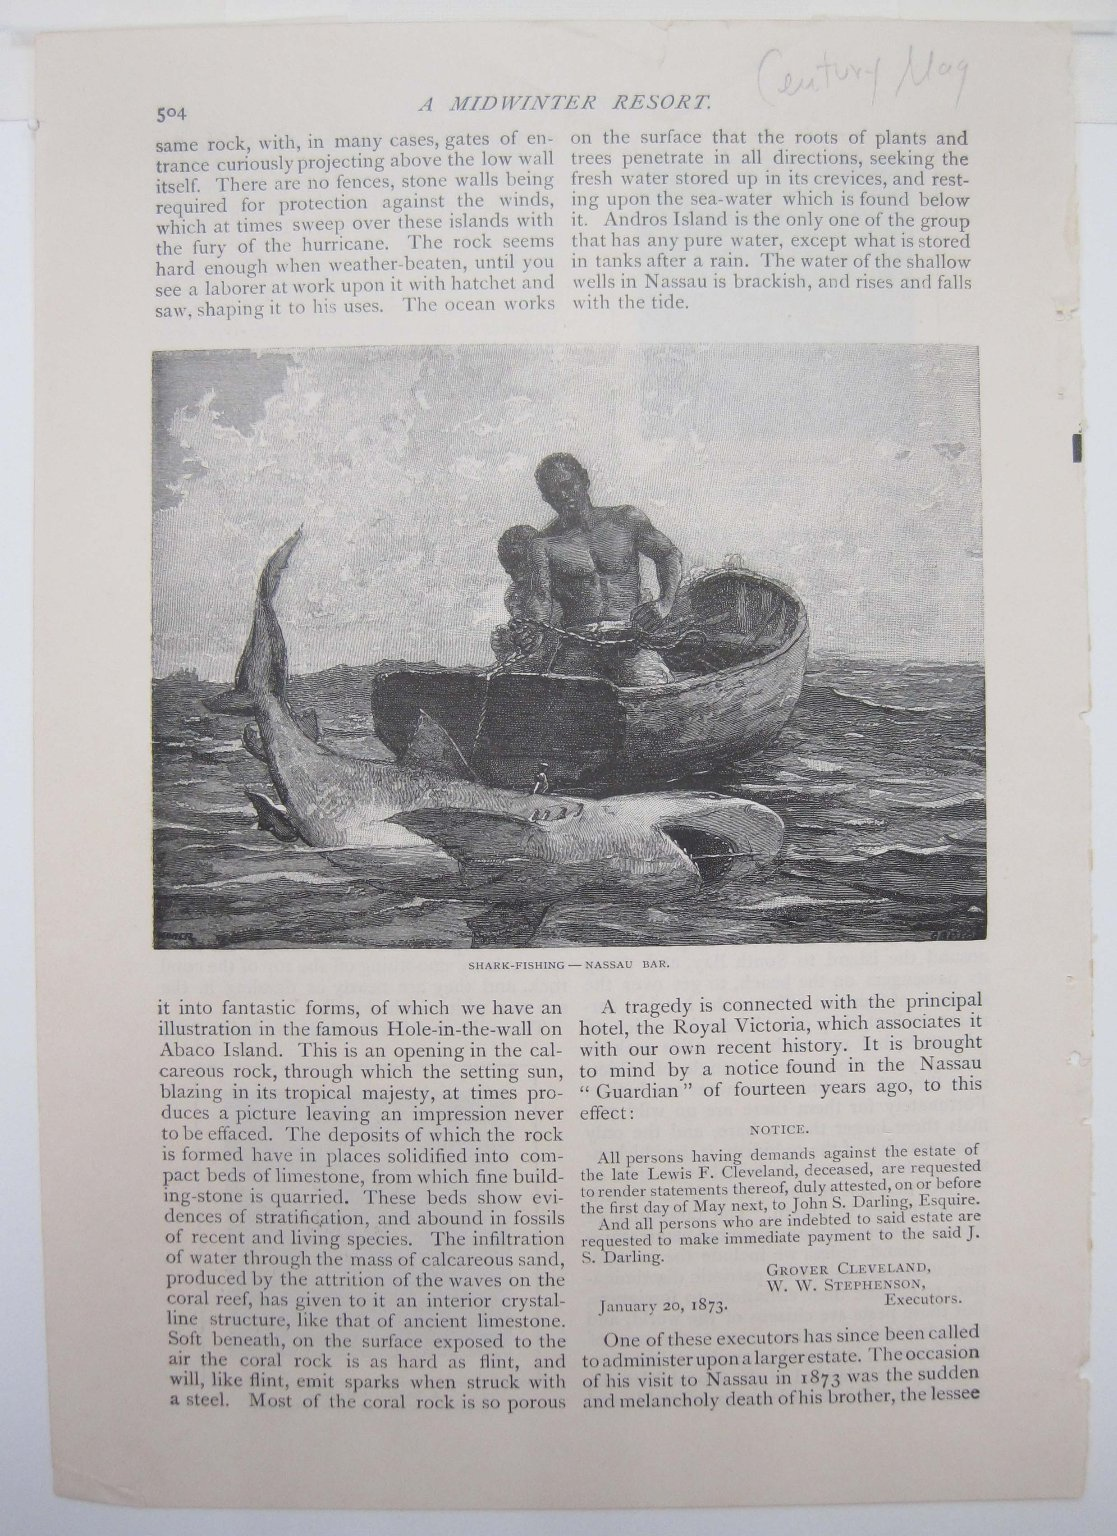 Brooklyn Museum: Shark Fishing-Nassau Bar